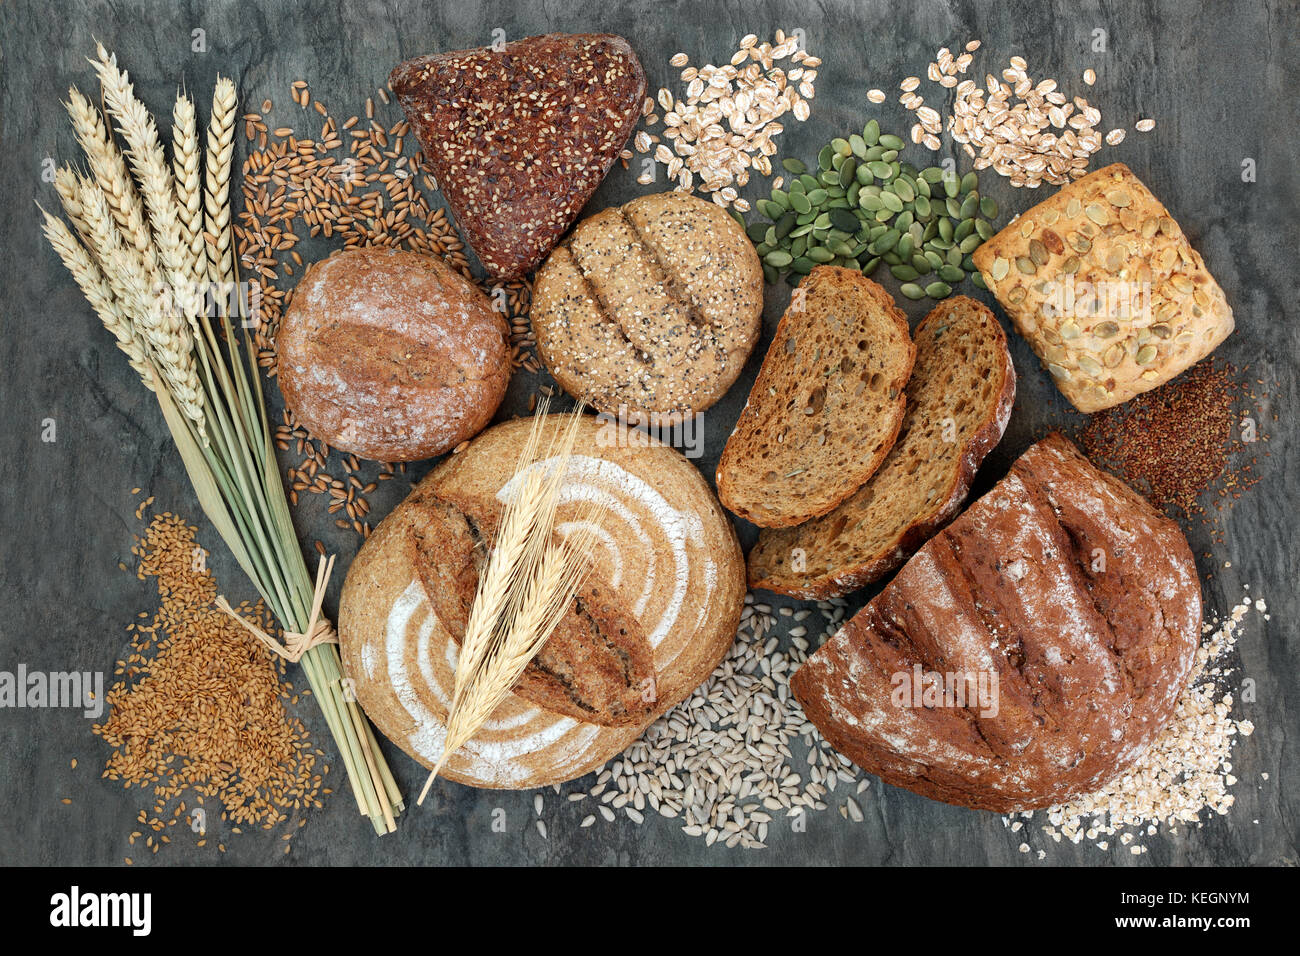 High dietary fibre health food concept with multi seed whole grain rolls, seeds, nuts and cereals. Foods high in - Stock Image